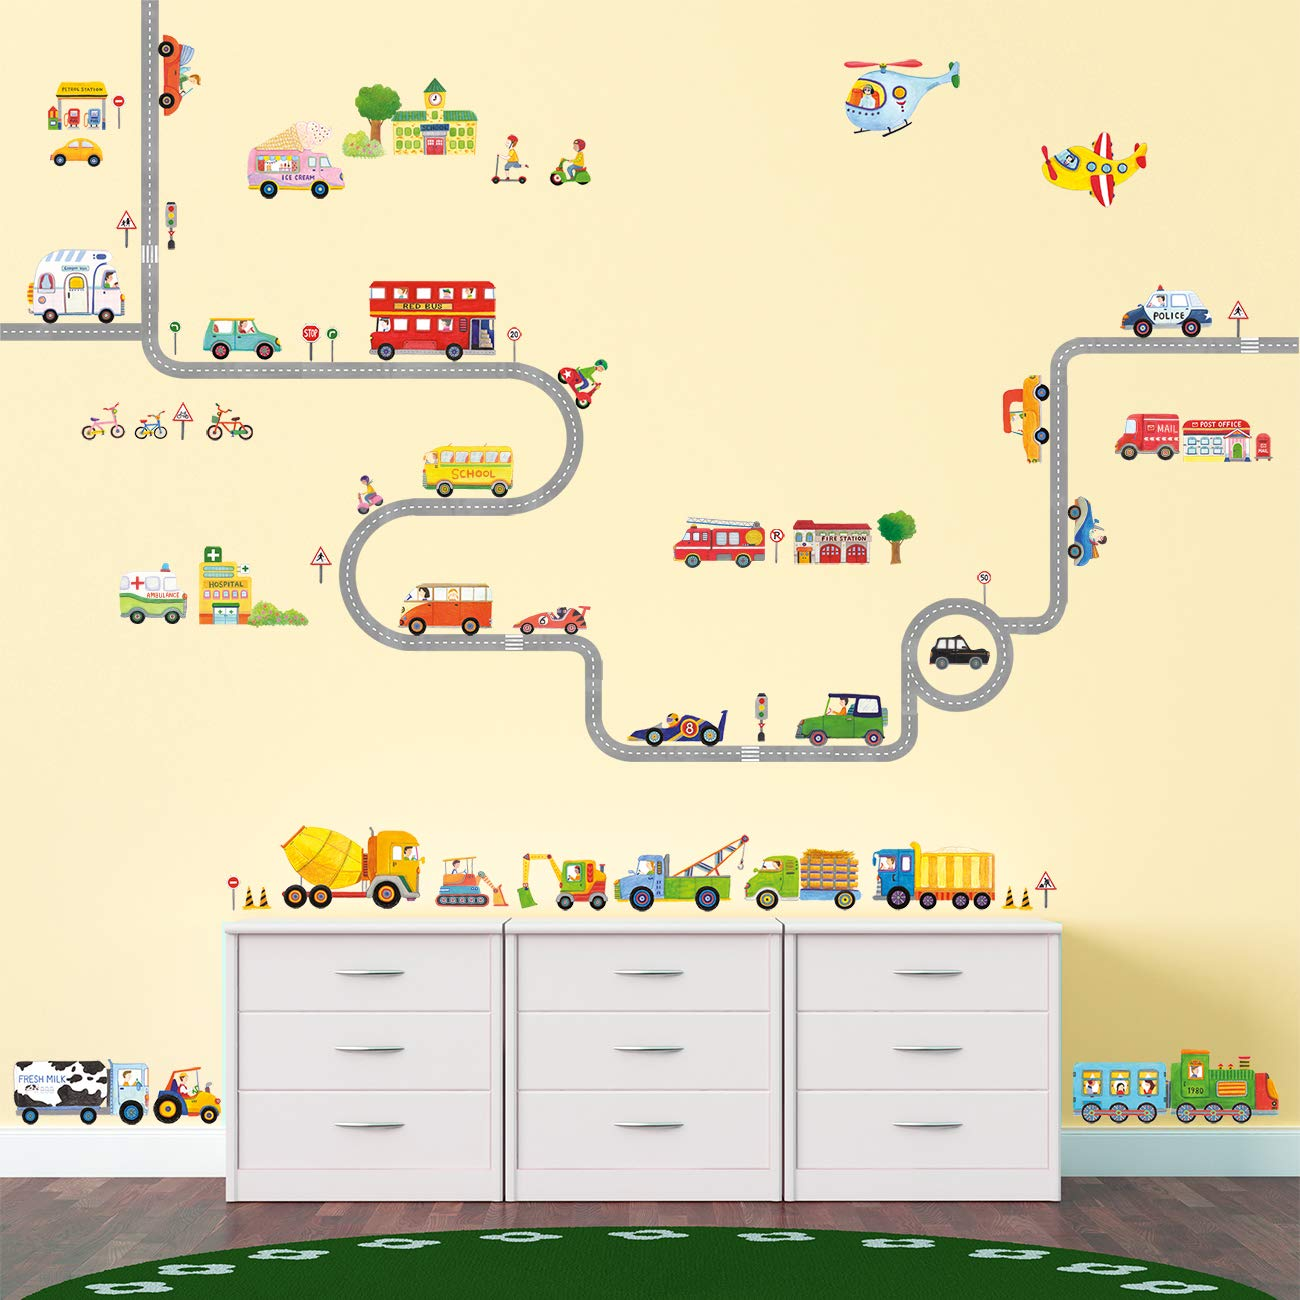 Decowall DAT-1404P1405 The Road and Transports Kids Wall Decals Wall Stickers Peel and Stick Removable Wall Stickers for Kids Nursery Bedroom Living Room by Decowall (Image #3)